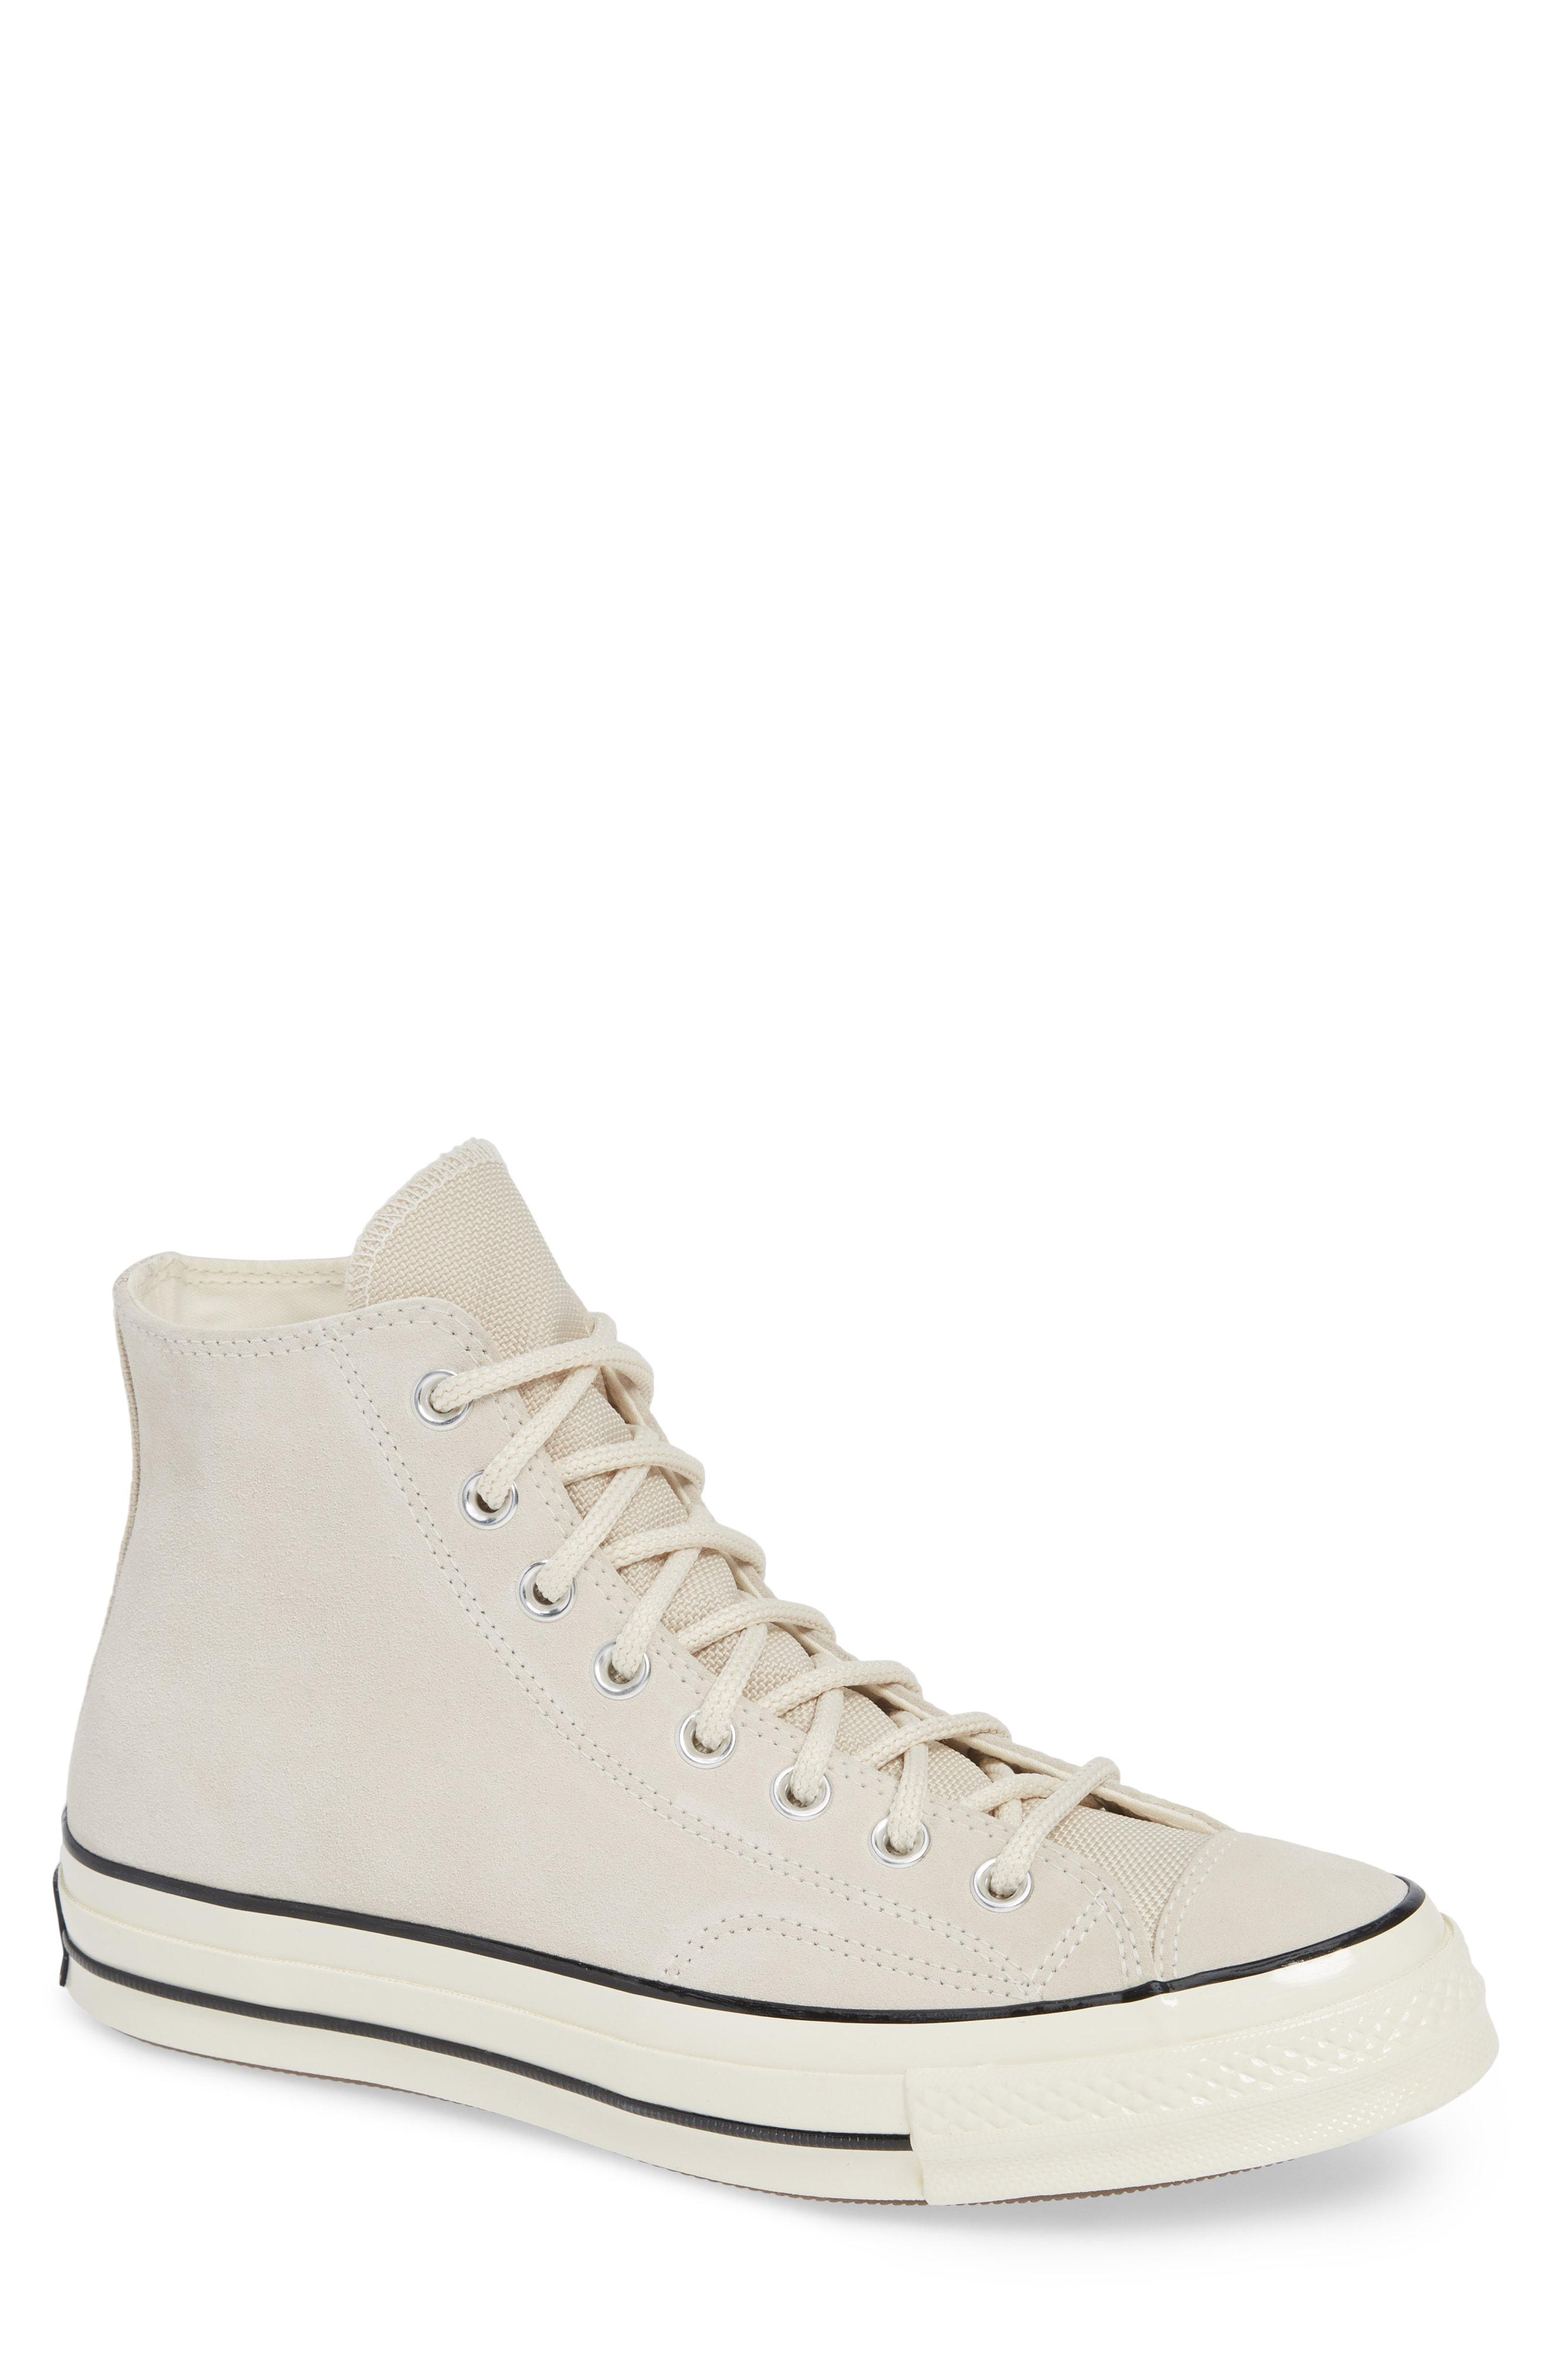 Converse Chuck Taylor All Star 70 Base Camp High Top Sneaker for Men ... 9f475eb8c